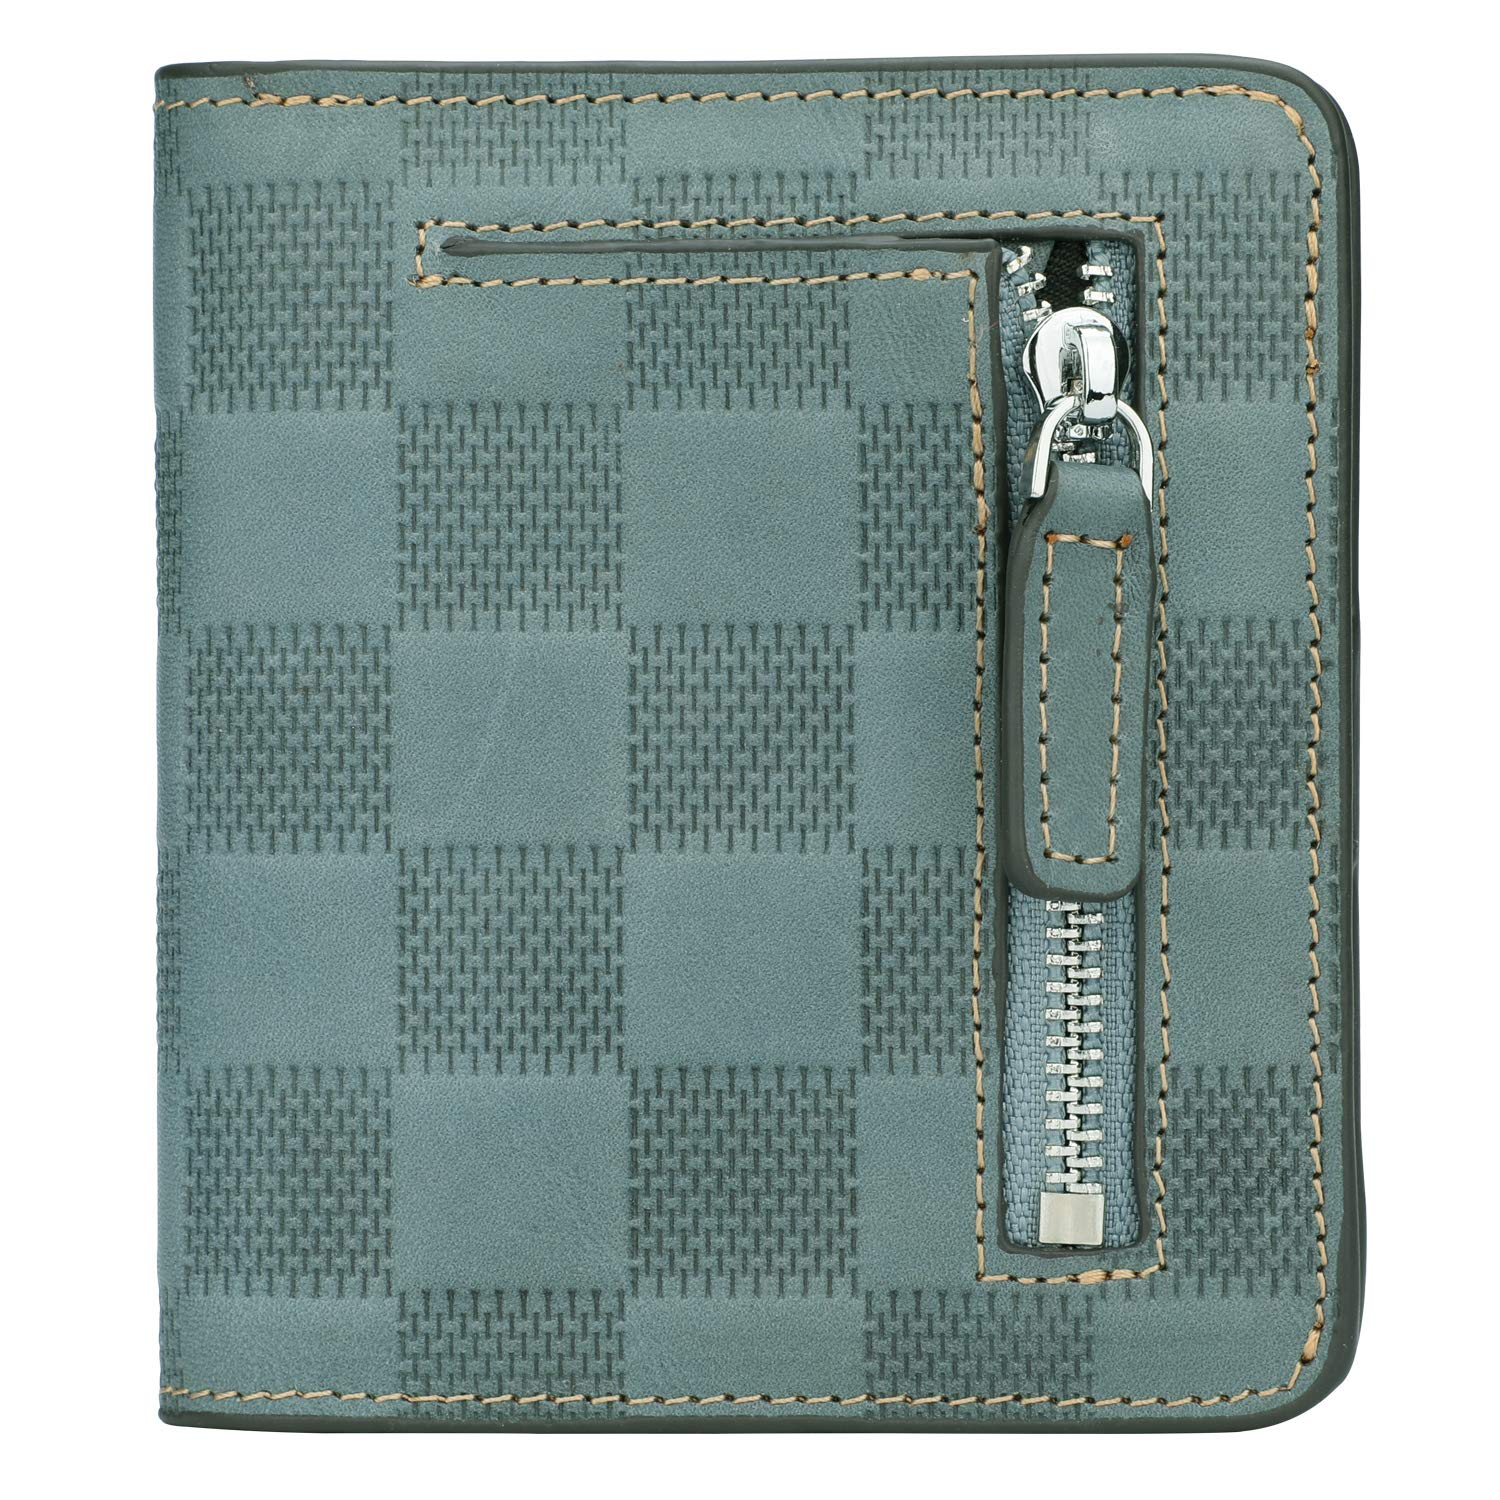 RFID Blocking Wallet Women's Small Compact Bifold Leather Purse Front Pocket Mini Wallet (Checkered Light Blue) by GDTK